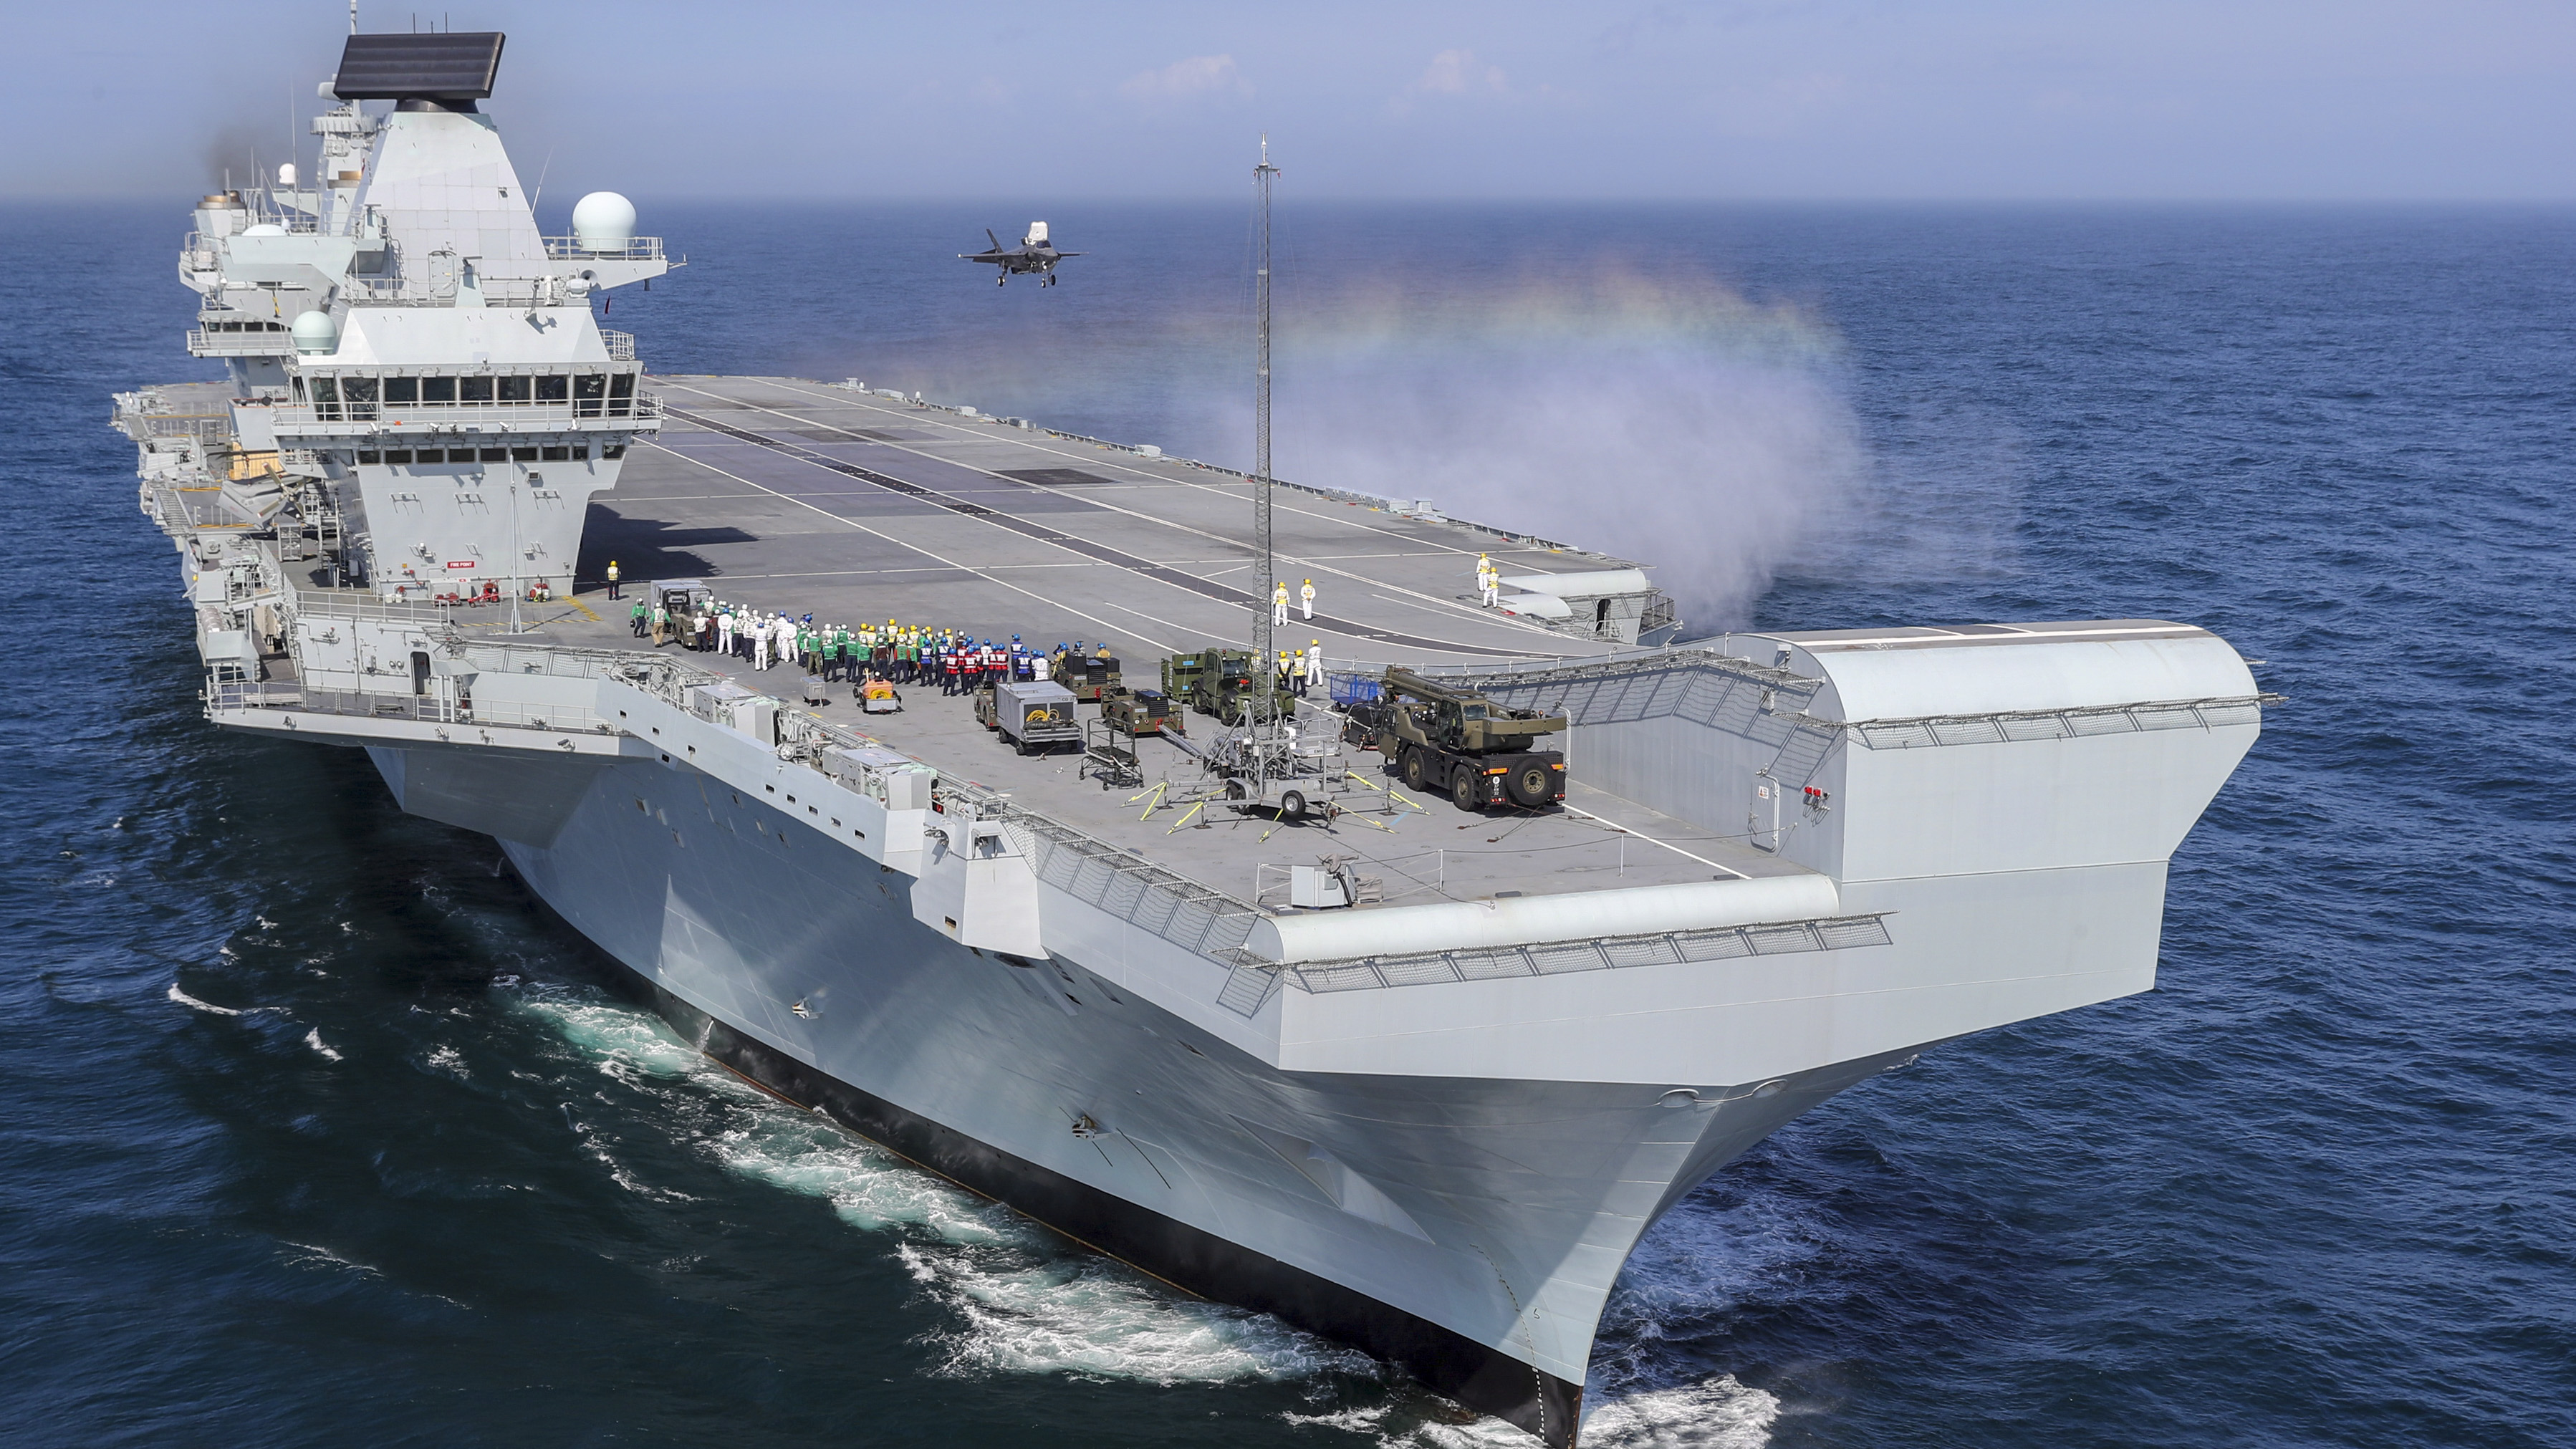 n this handout image provided by the Ministry of Defence, Royal Navy Commander, Nathan Gray lands his F-35B onboard HMS Queen Elizabeth on September 26, 2018 in Portsmouth, England. Two F-35B Lightning II fighter jets have successfully landed onboard HMS Queen Elizabeth for the first time, laying the foundations for the next 50 years of fixed wing aviation in support of the UKs Carrier Strike Capability. (LPhot Kyle Heller/Ministry of Defence via Getty Images)